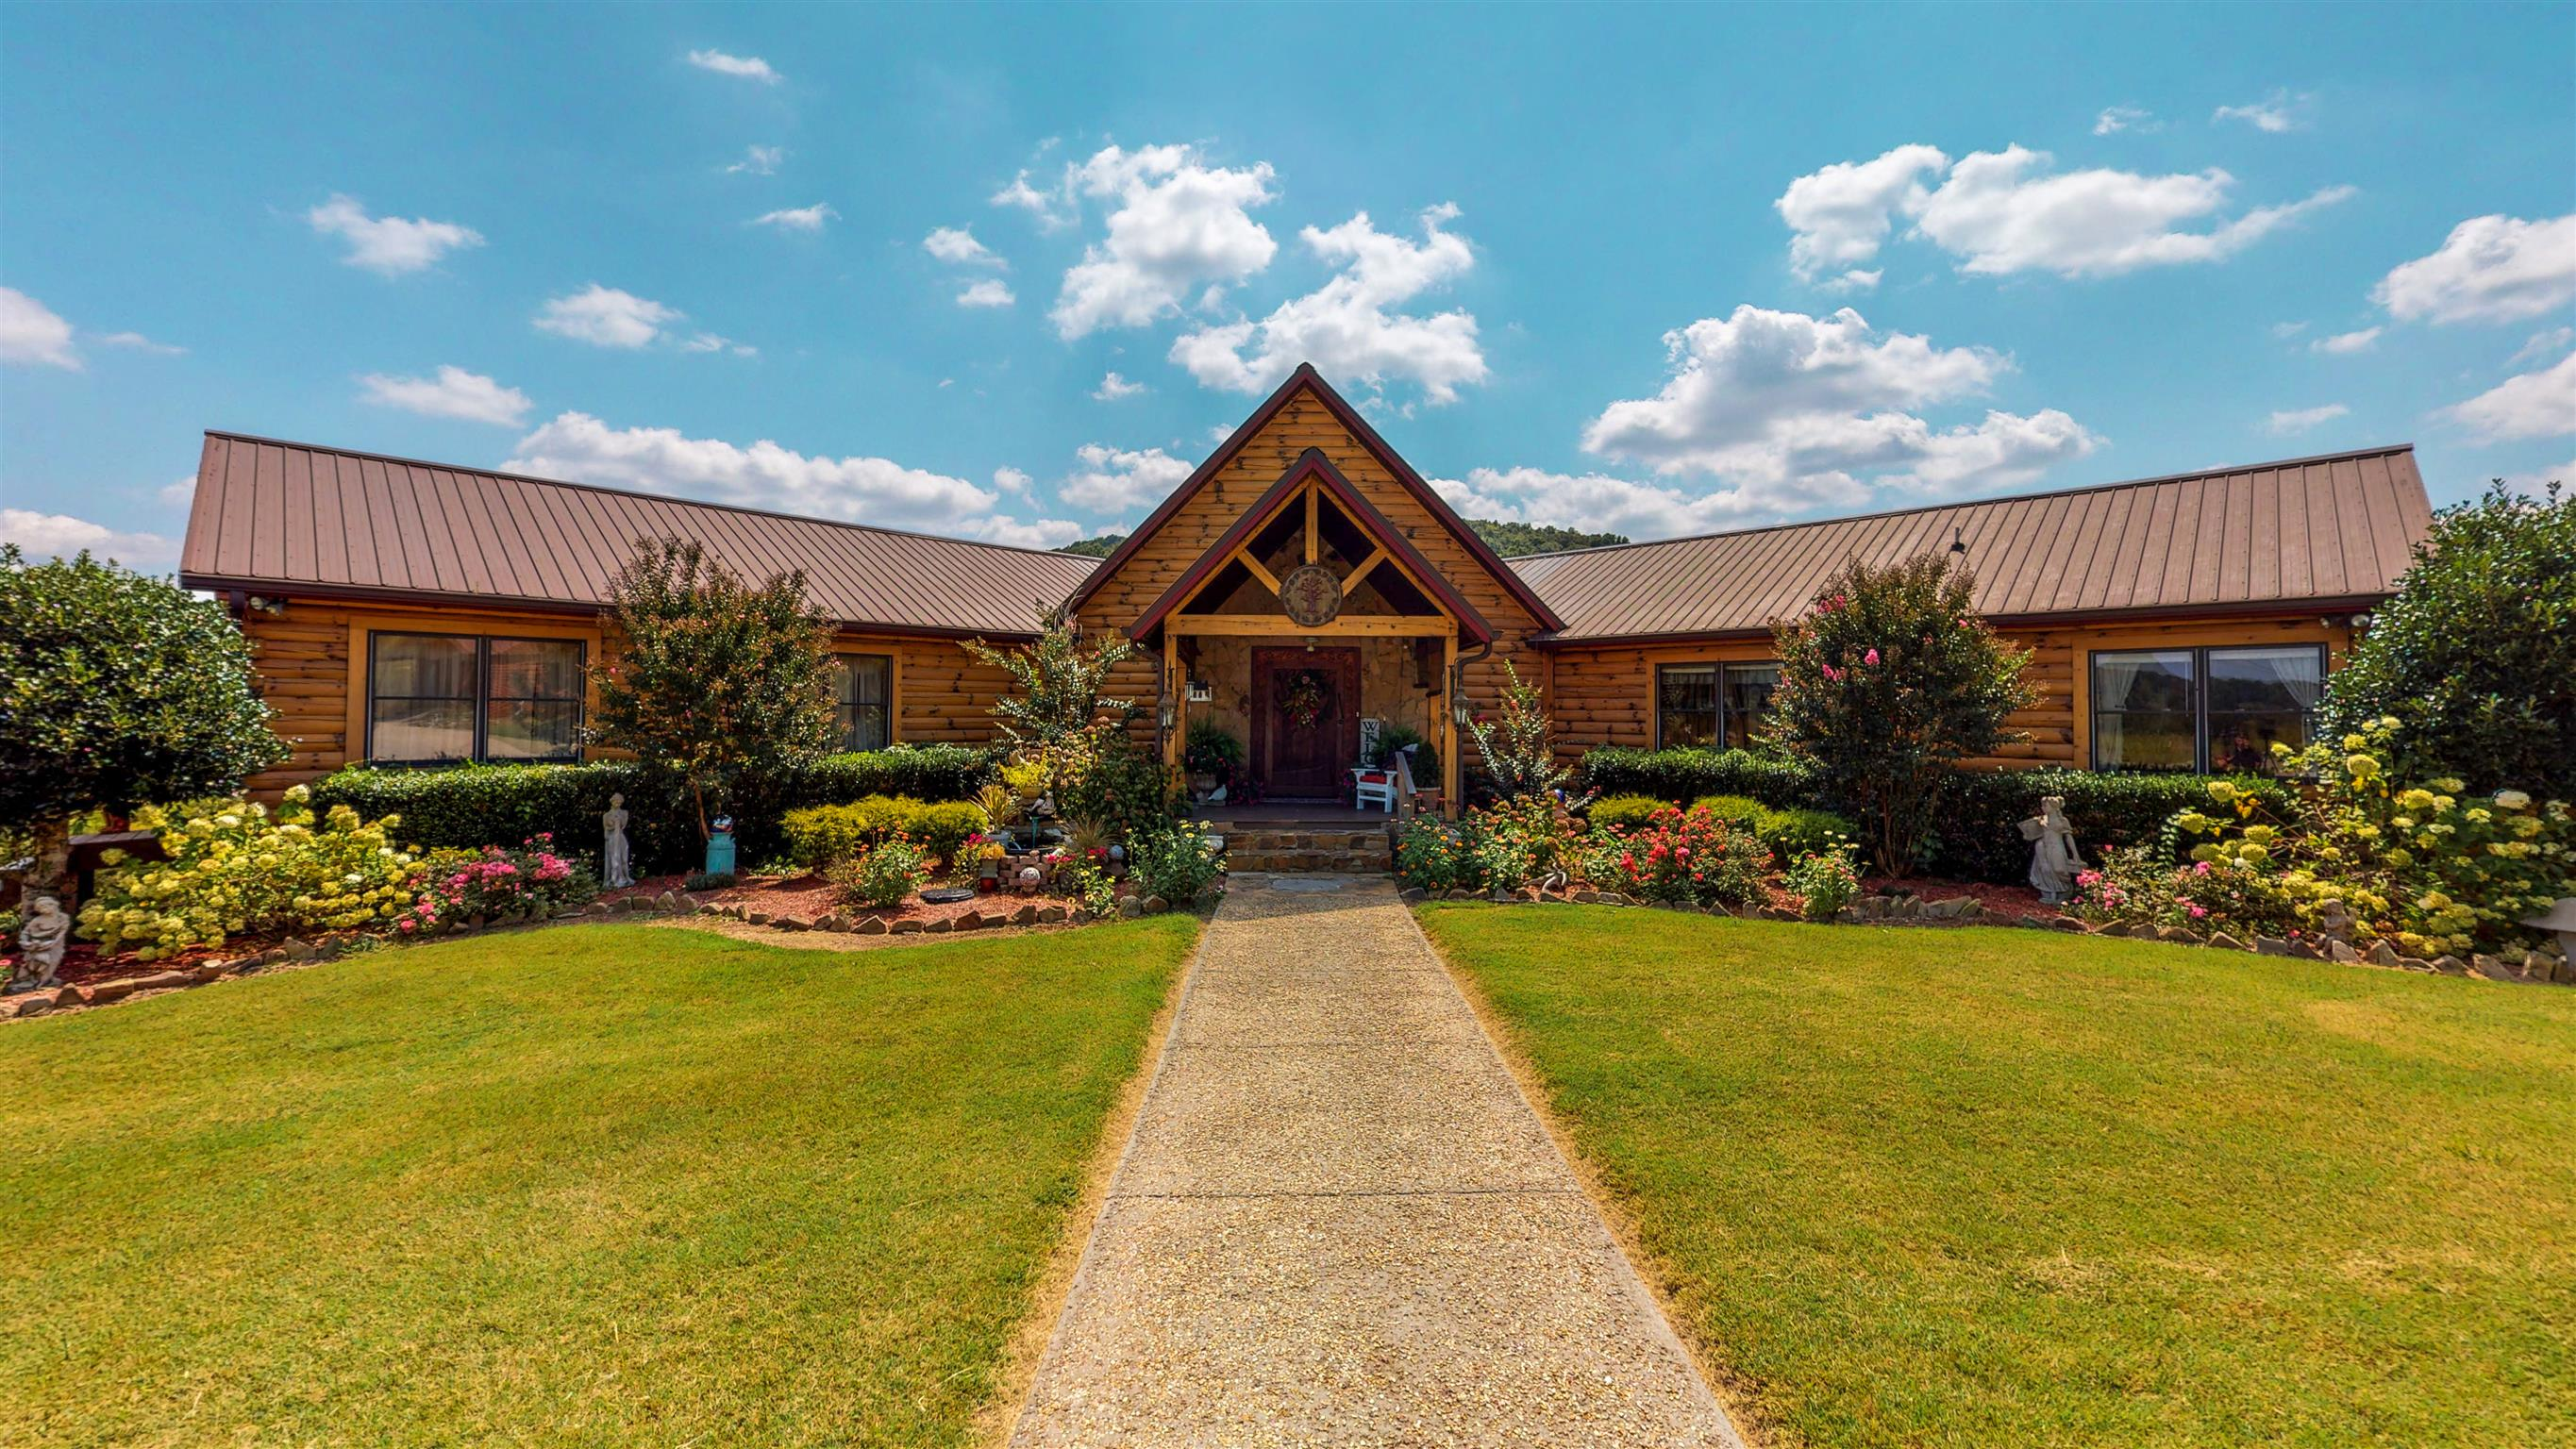 2063 Kennedy Creek Rd Auburntown, TN 37016